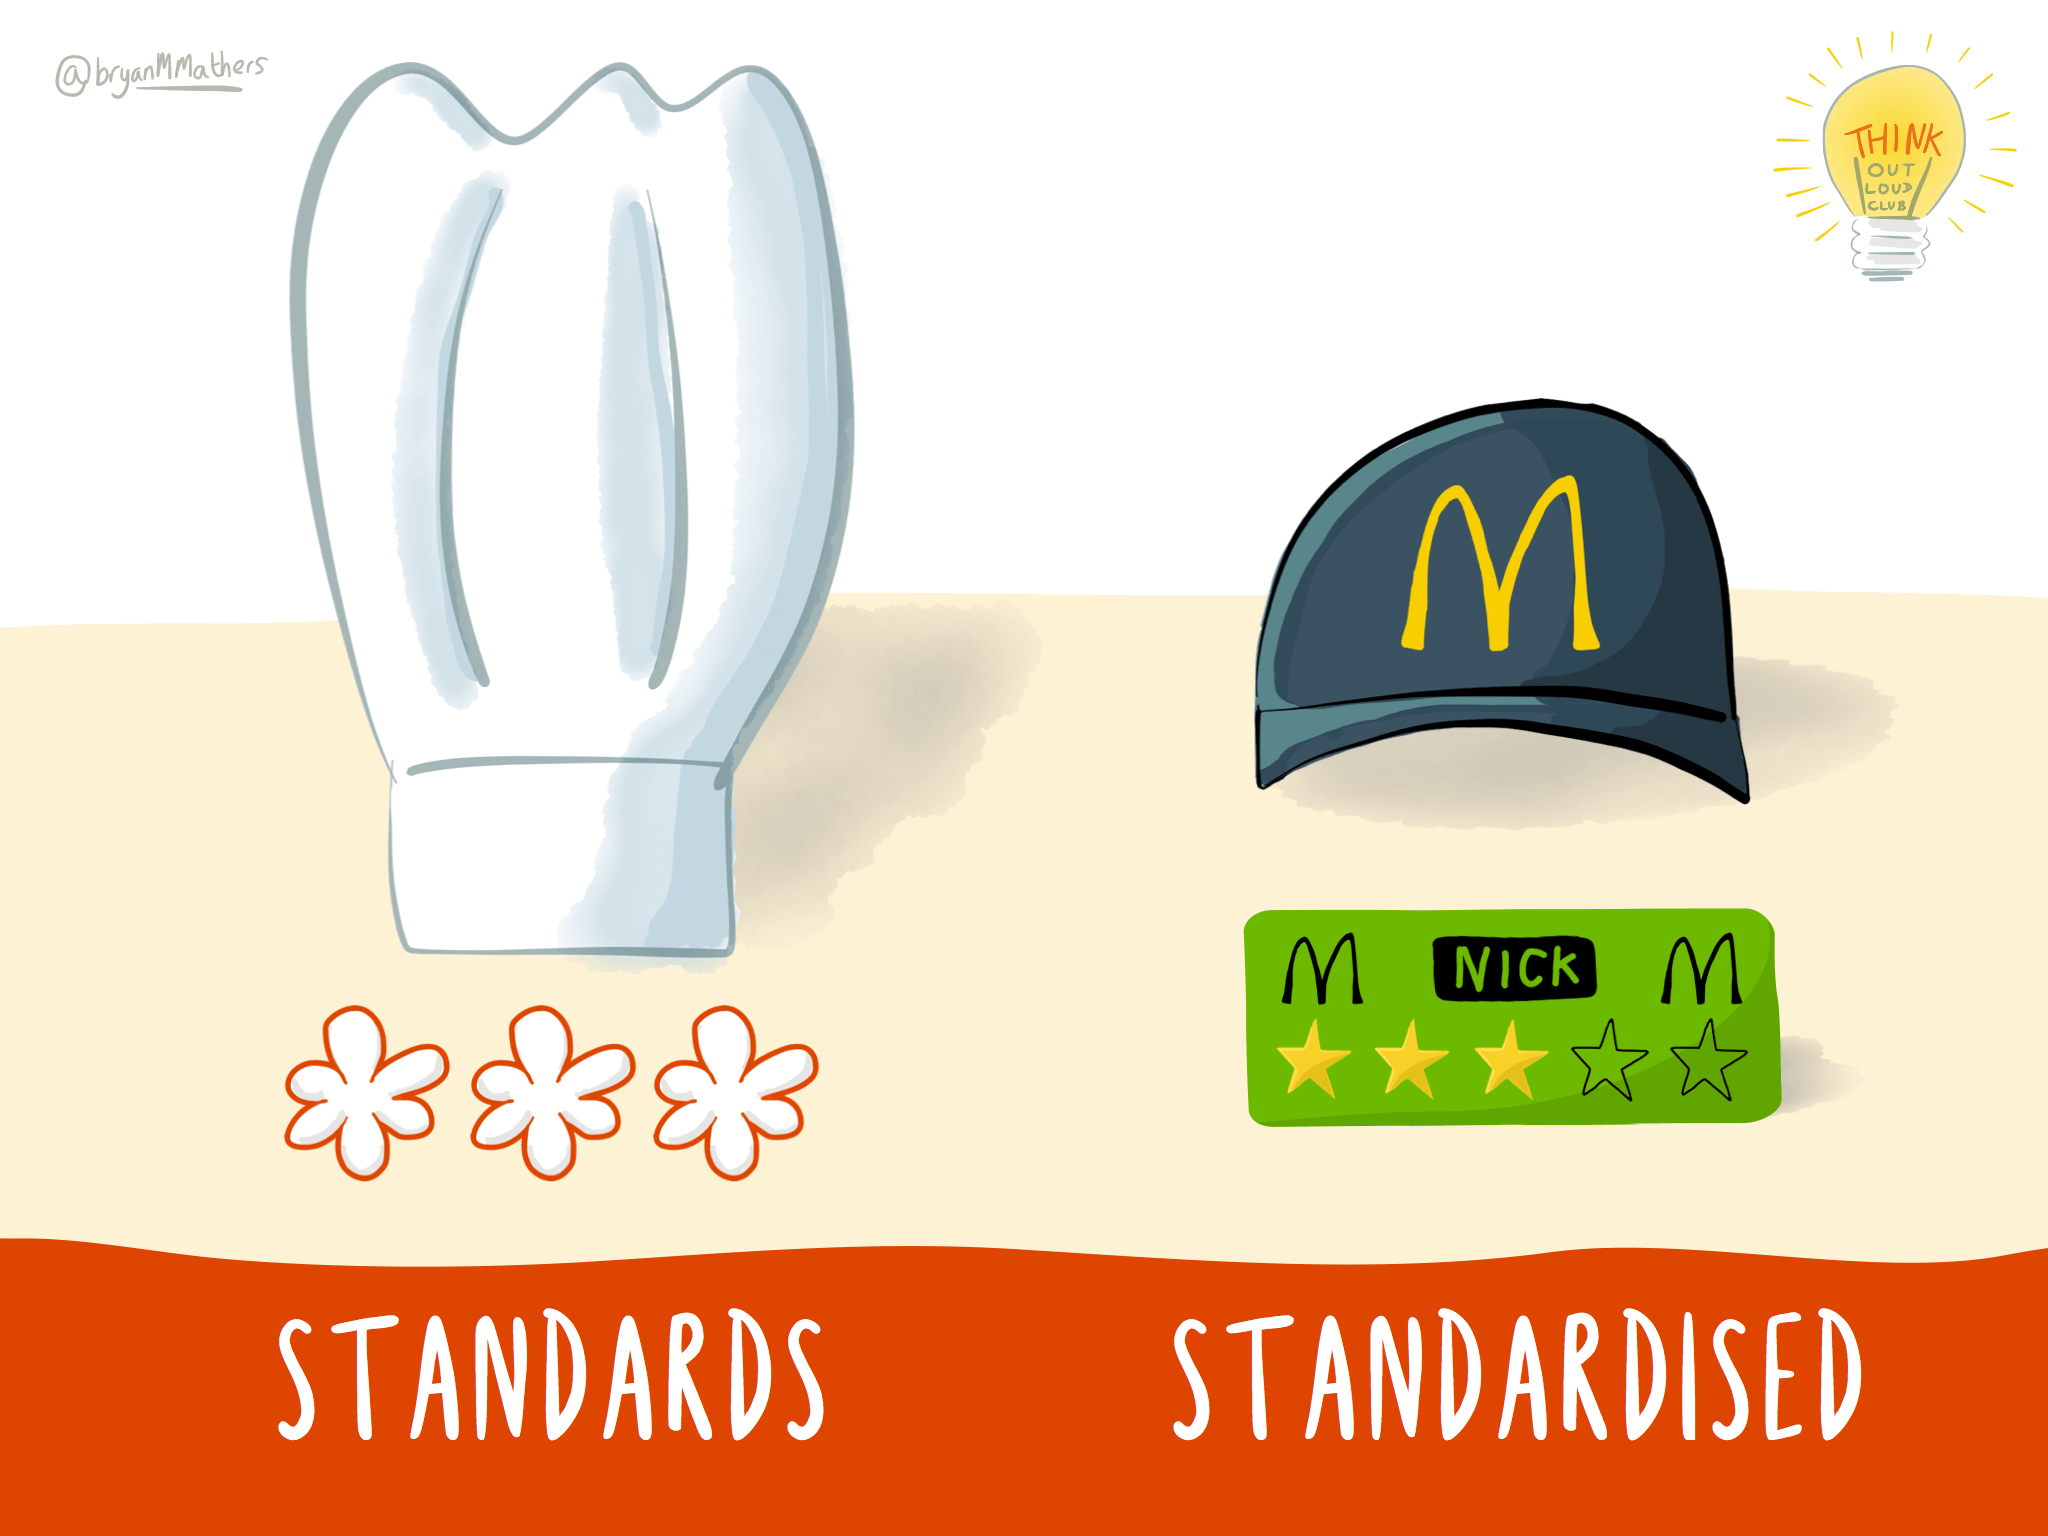 Standards vs Standardised